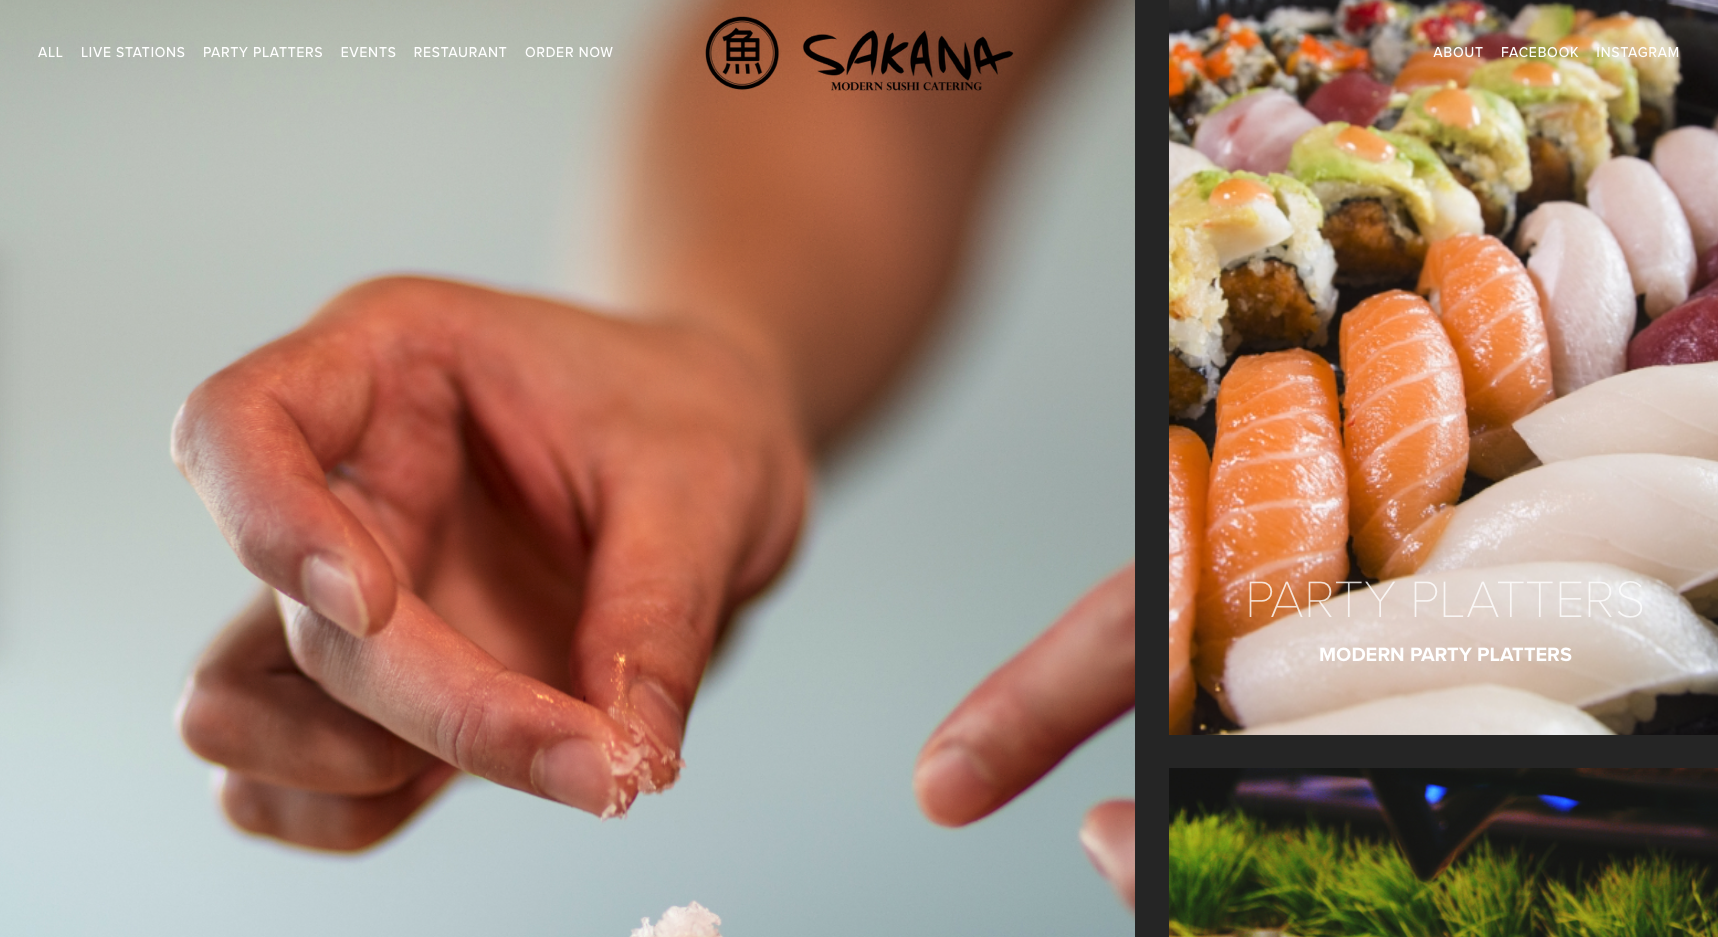 Developed for Sakana Modern Sushi in Bedminster, NJ to use as a marketing and ordering platform for the catering side of their business.